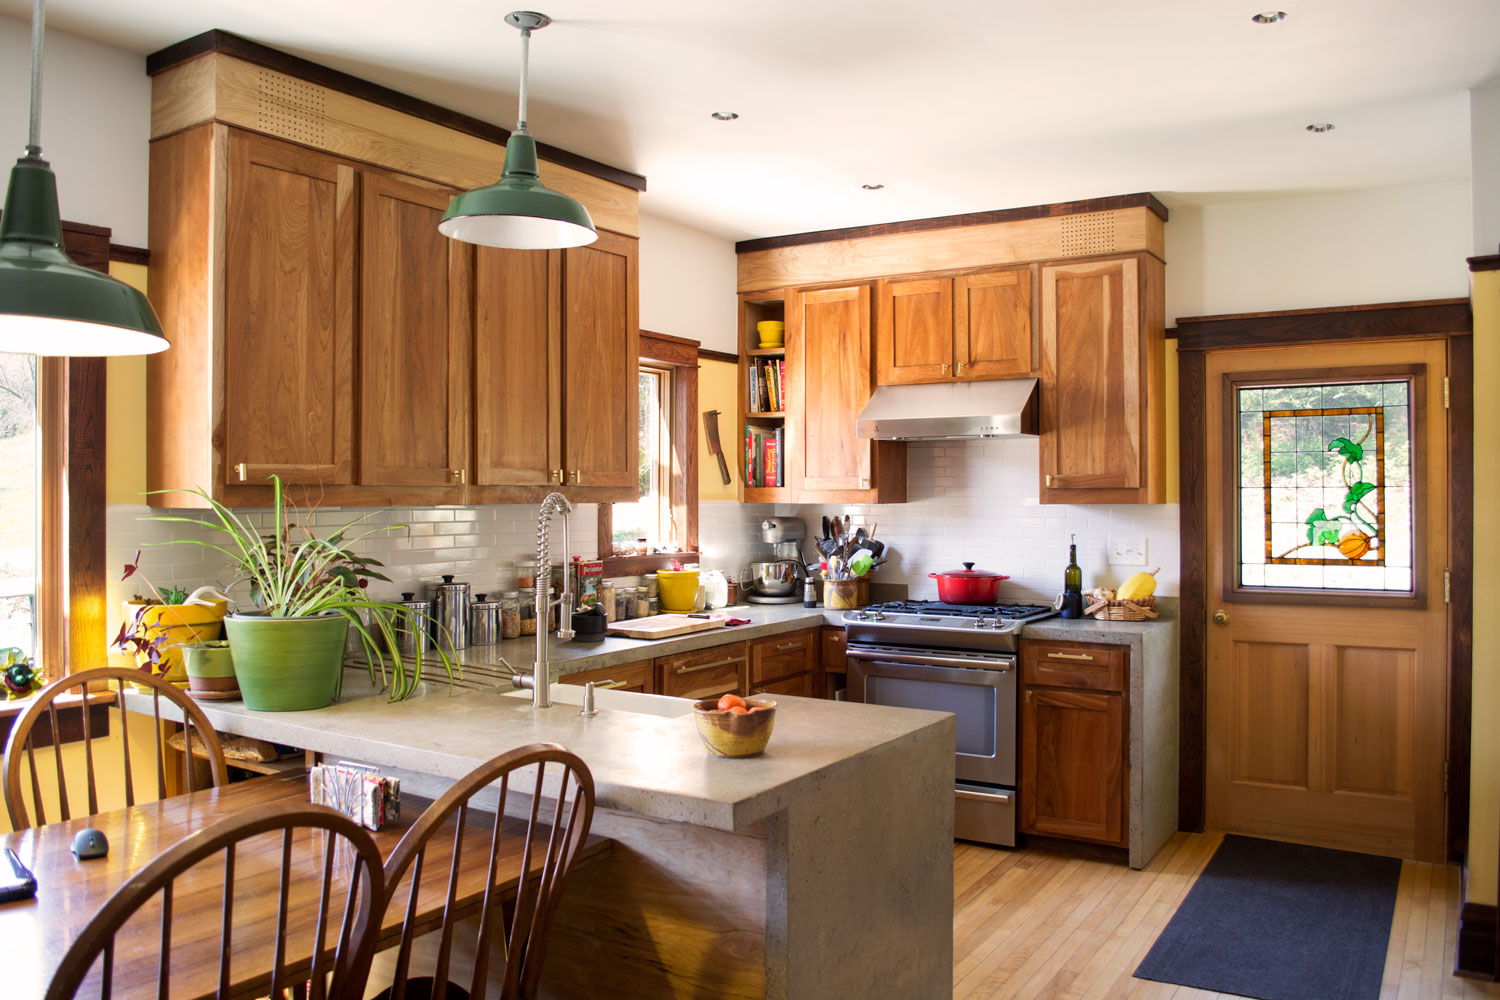 Cabinets fabricated from rustic cherry; counters poured-in-place concrete